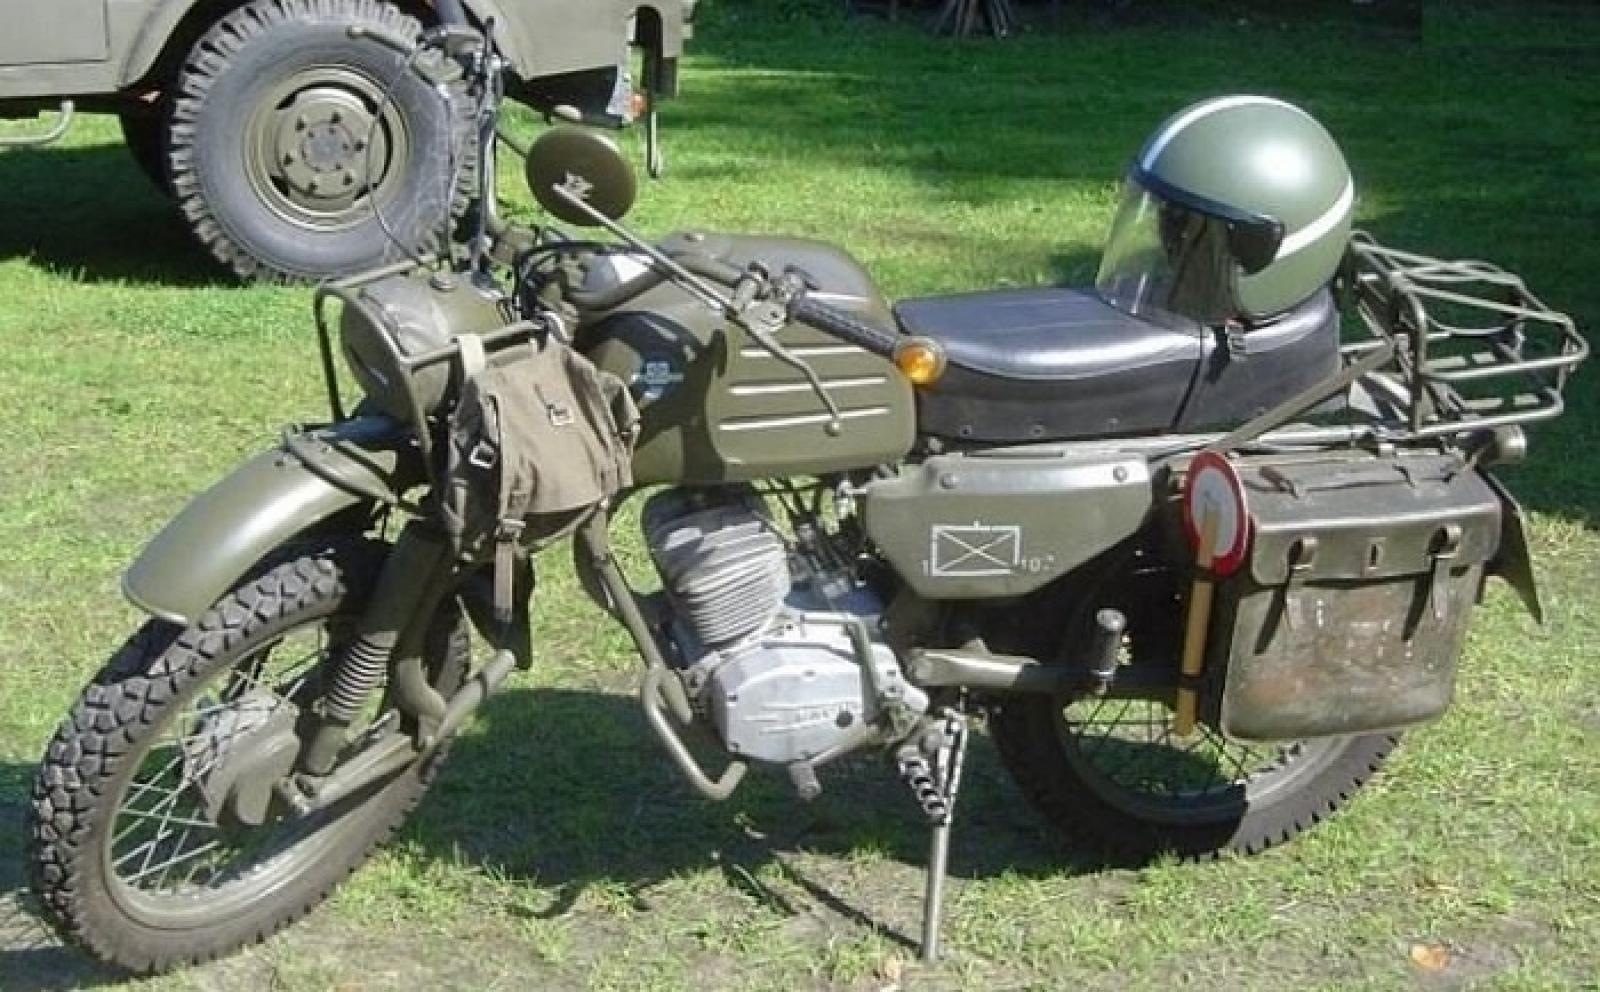 Hercules K 125 Military 1980 images #74137